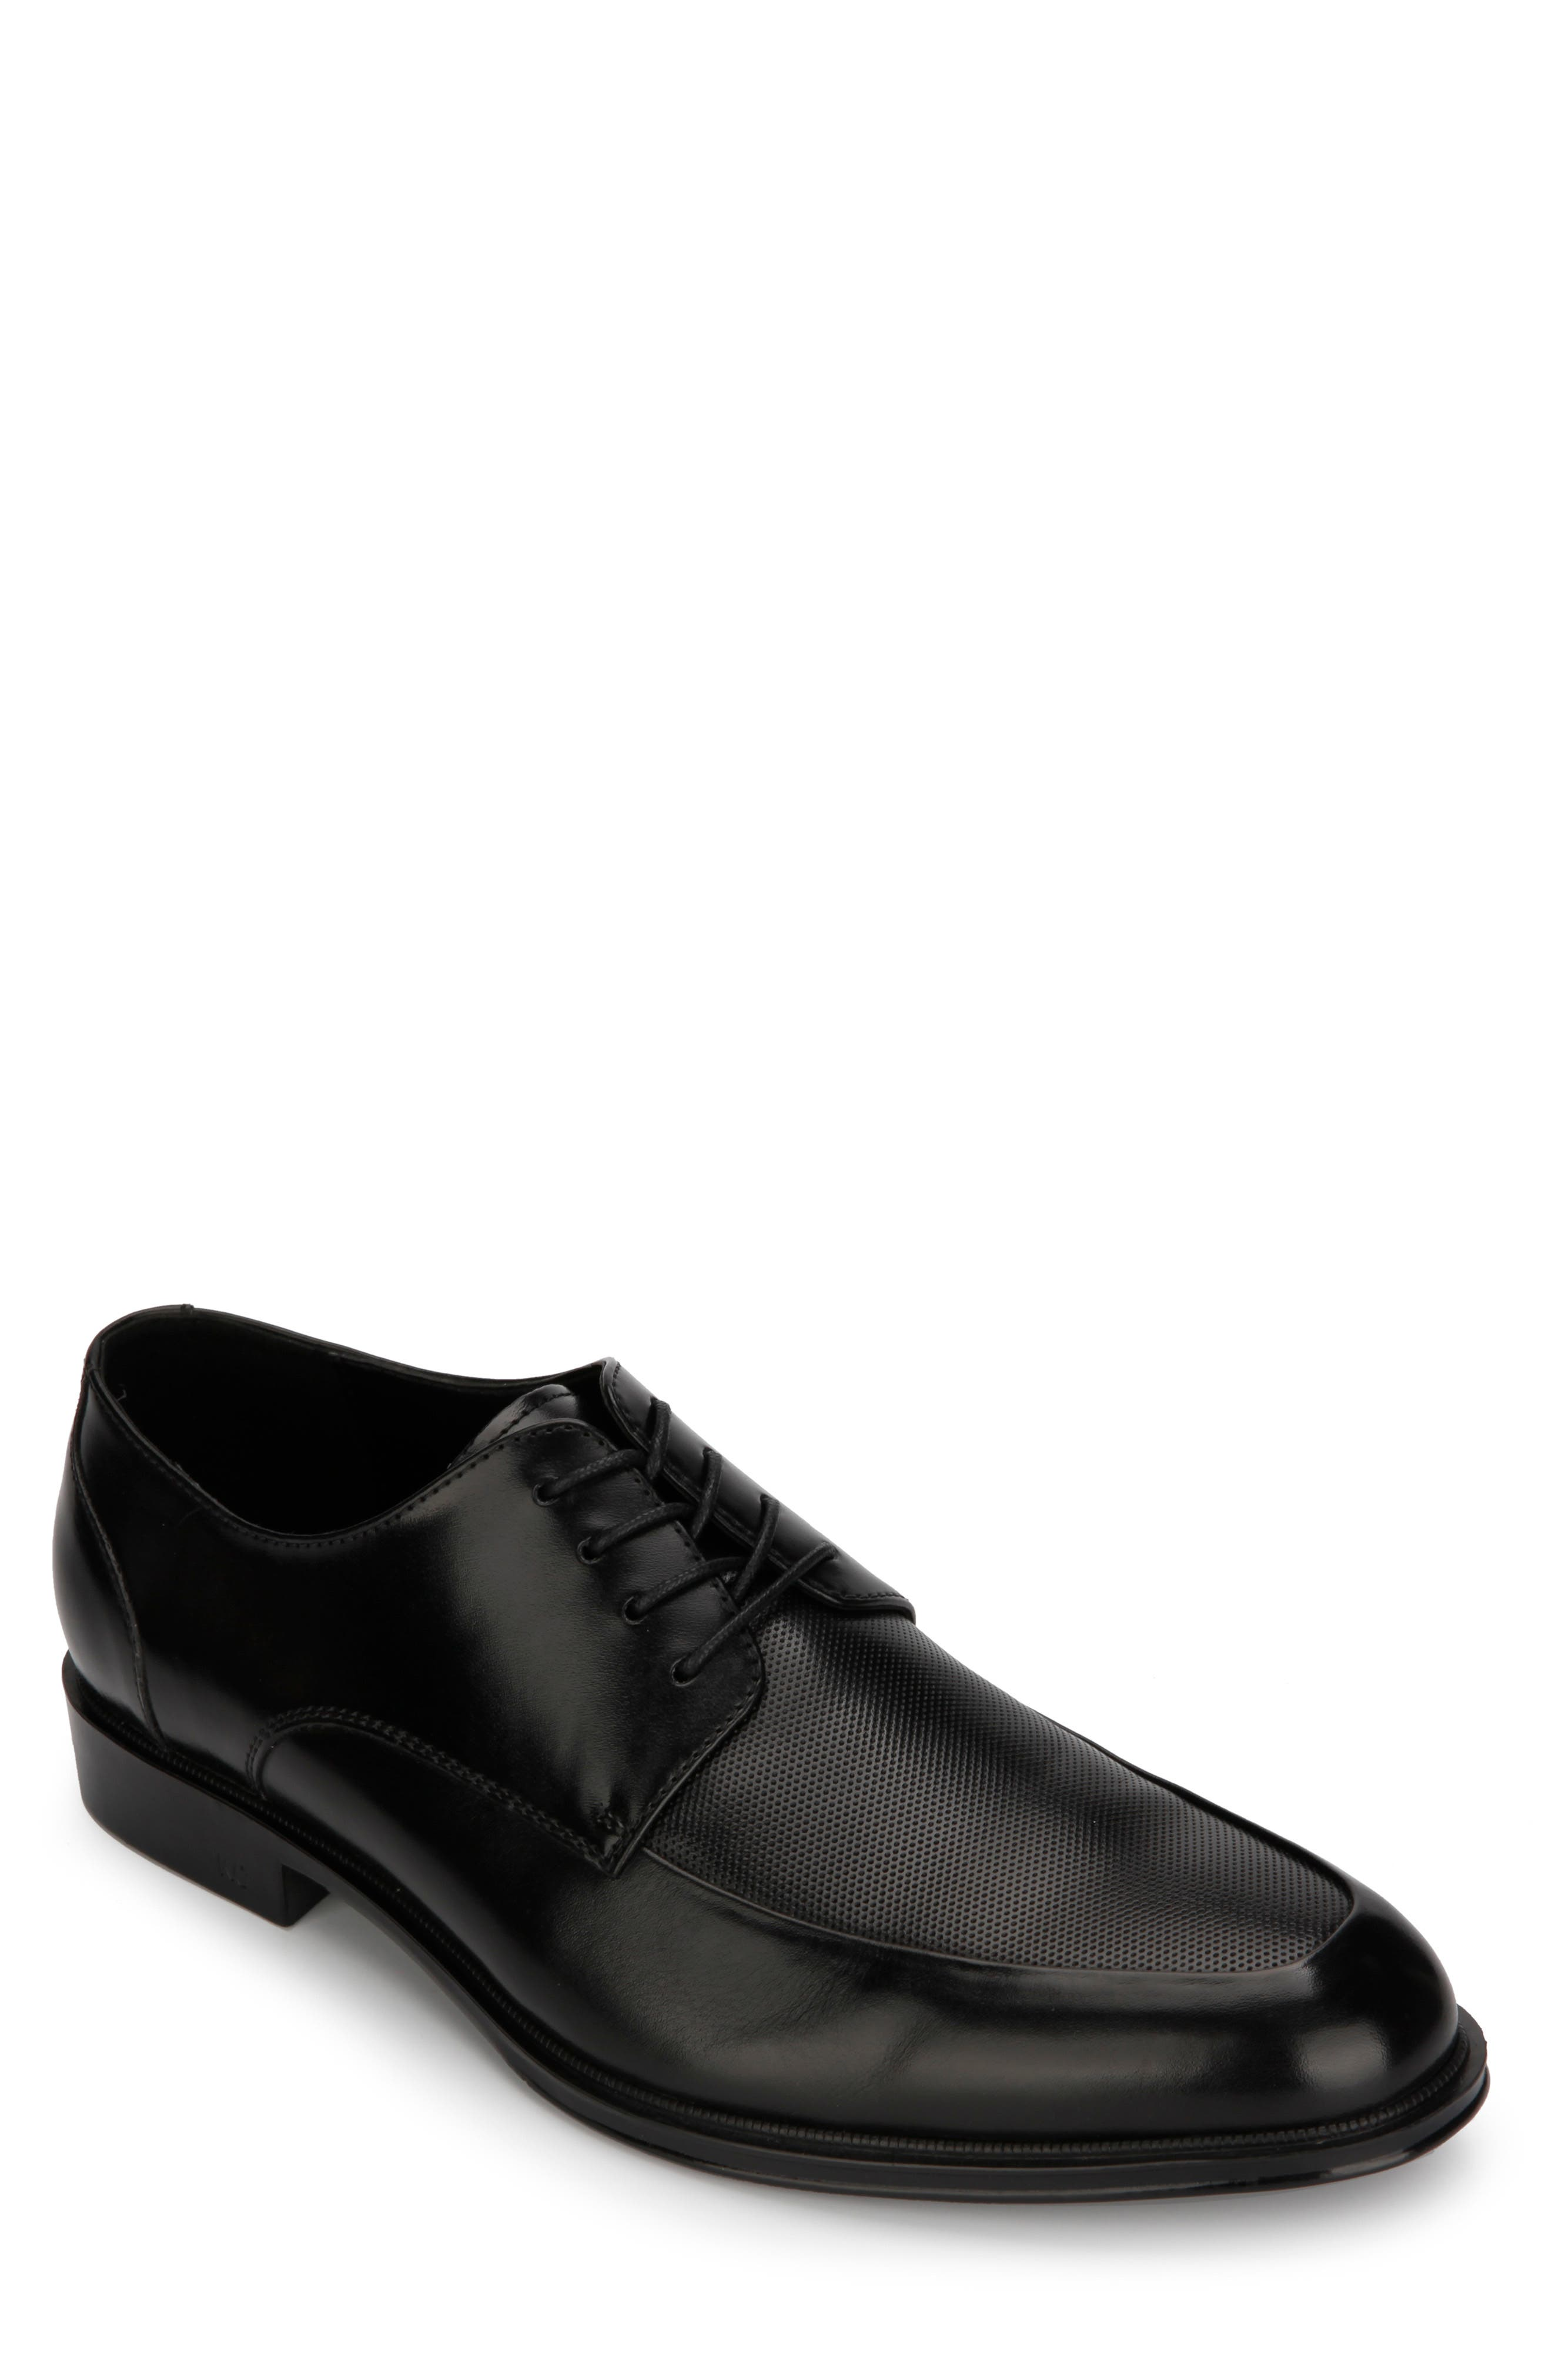 REACTION KENNETH COLE Zac Moc Toe Derby, Main, color, BLACK